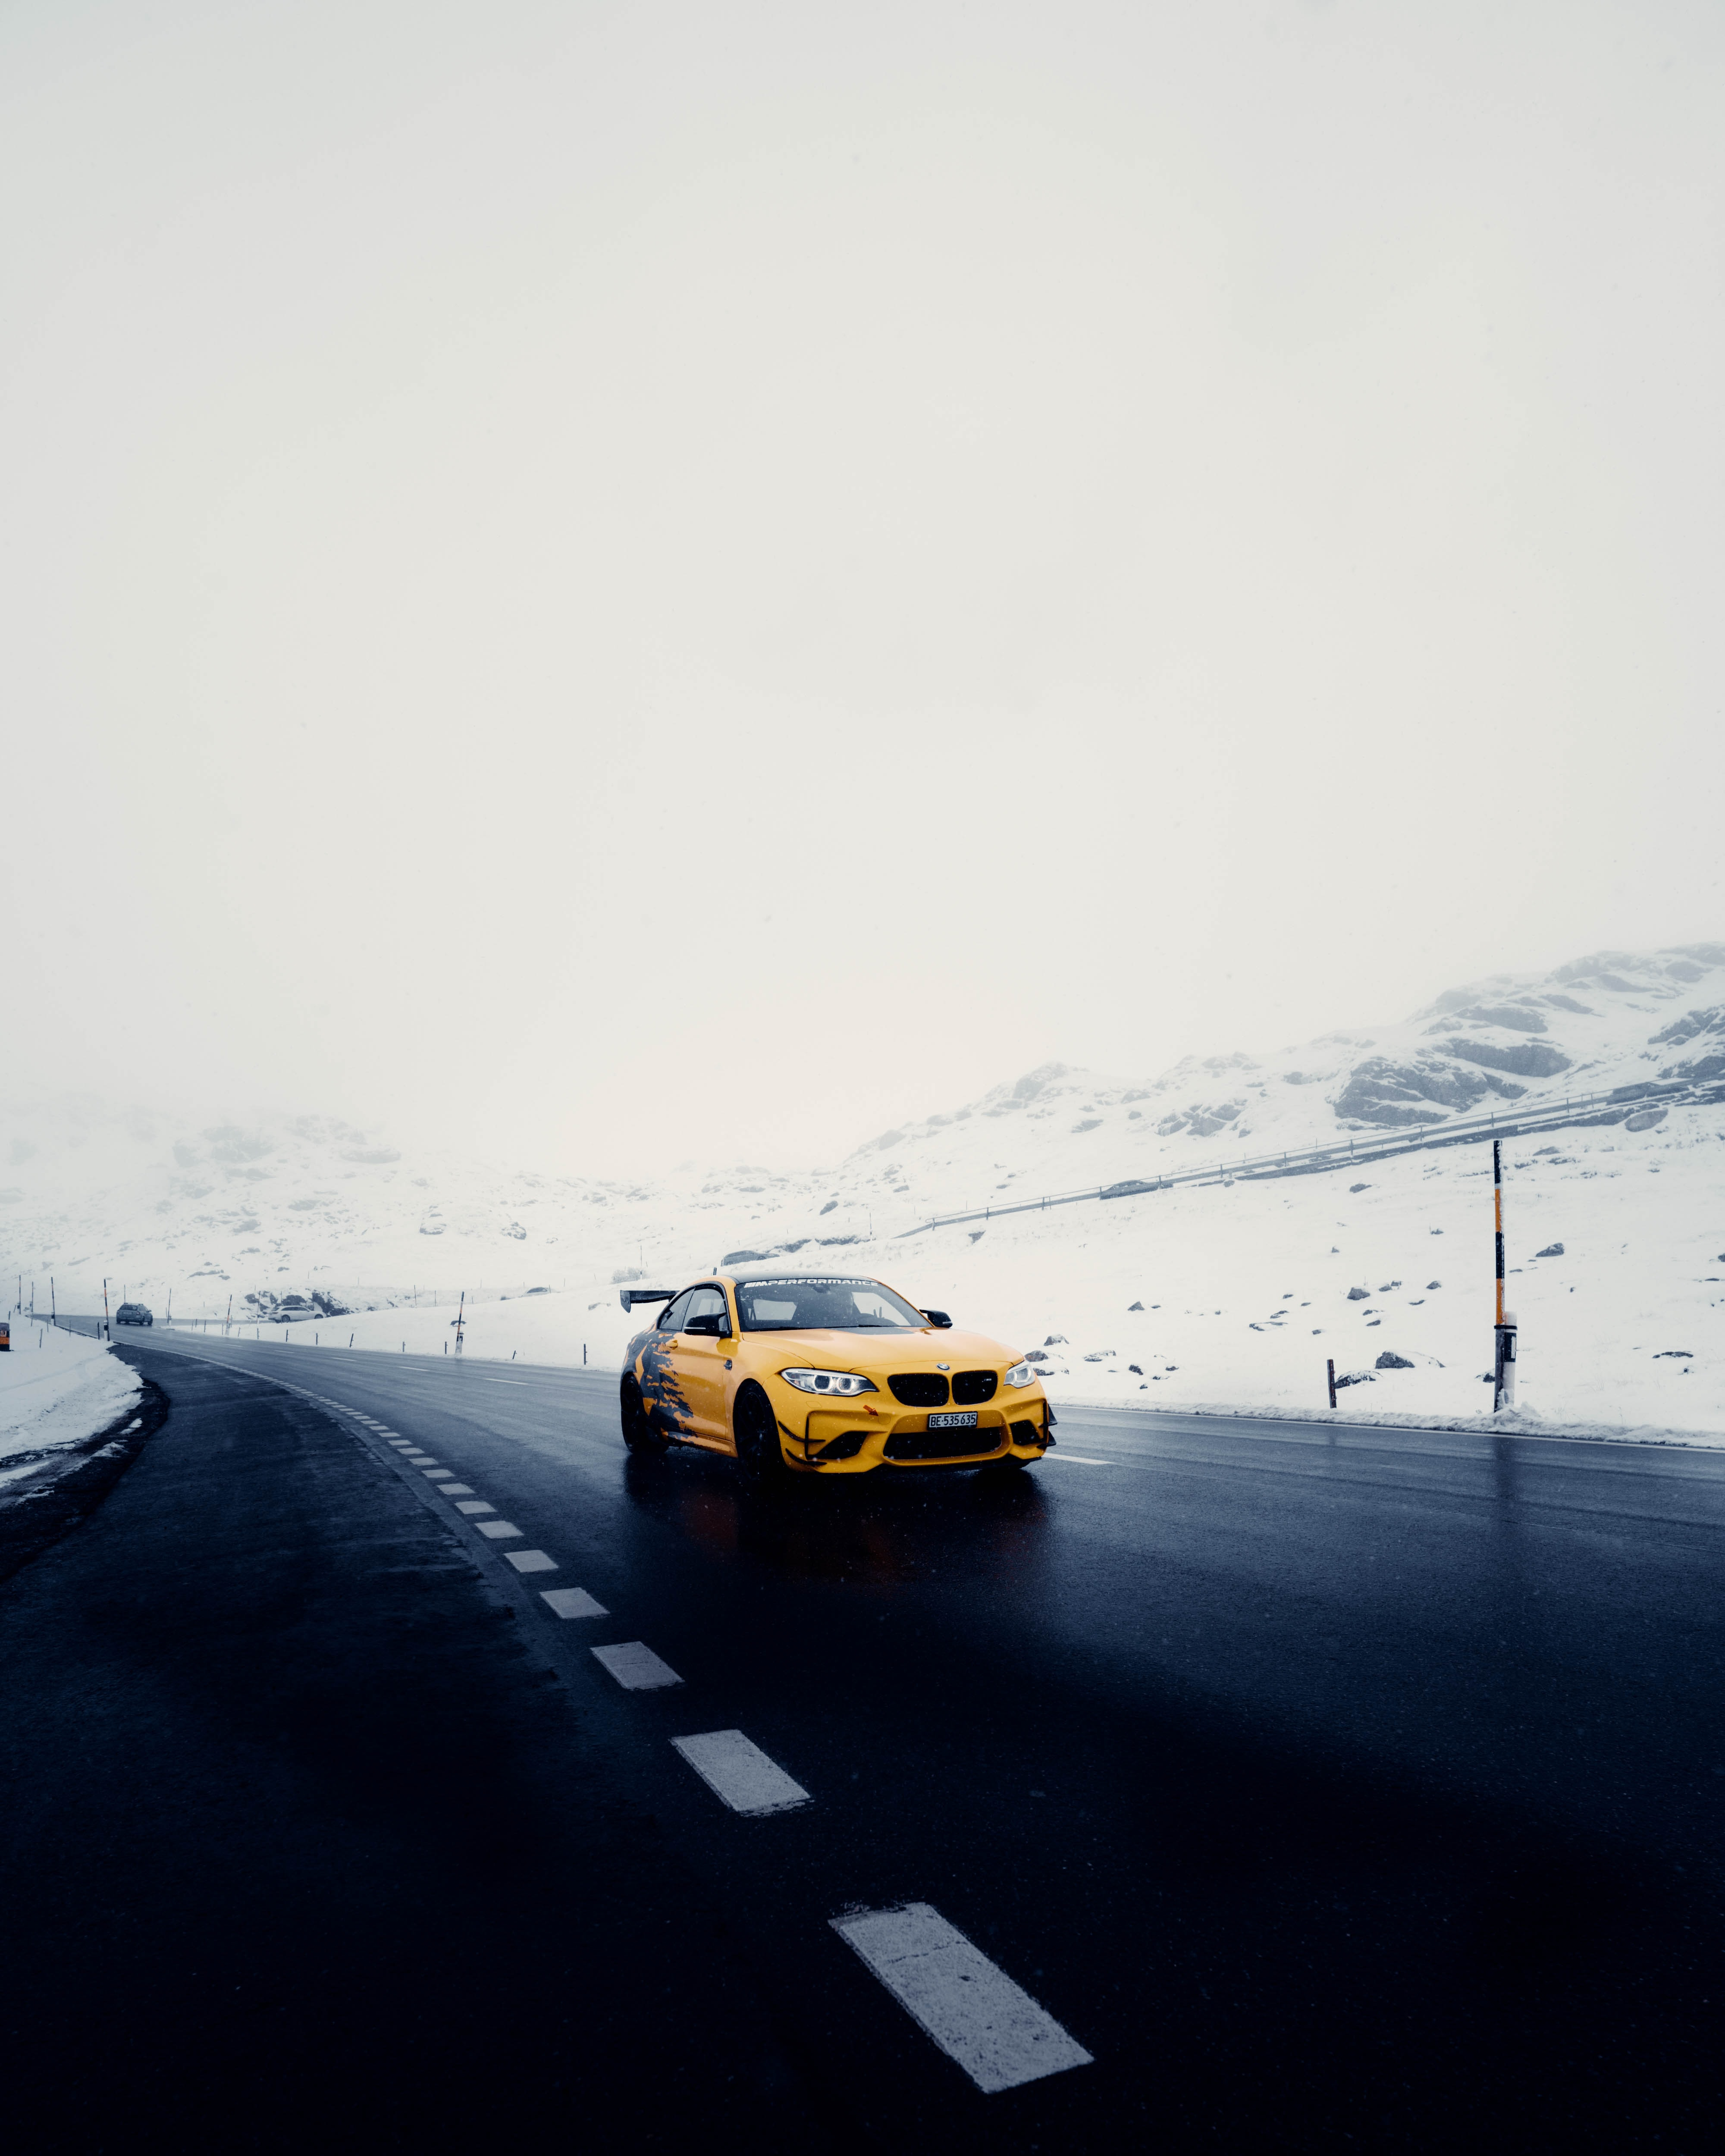 135362 free wallpaper 1080x2340 for phone, download images Sports, Snow, Cars, Road, Car, Sports Car 1080x2340 for mobile